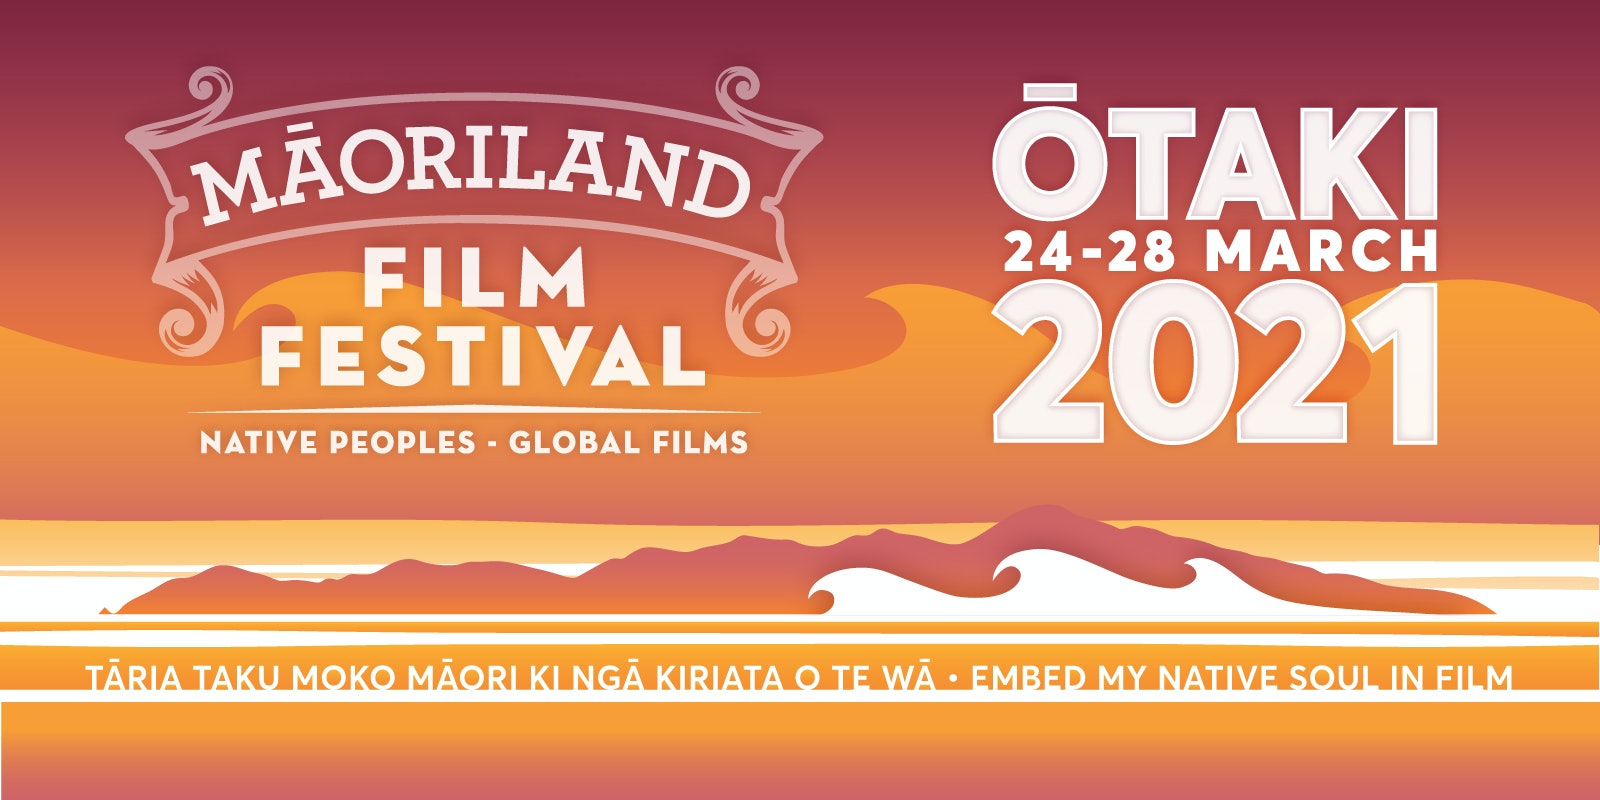 MAORILAND FILM FESTIVAL 2021 | NATIVE Minds